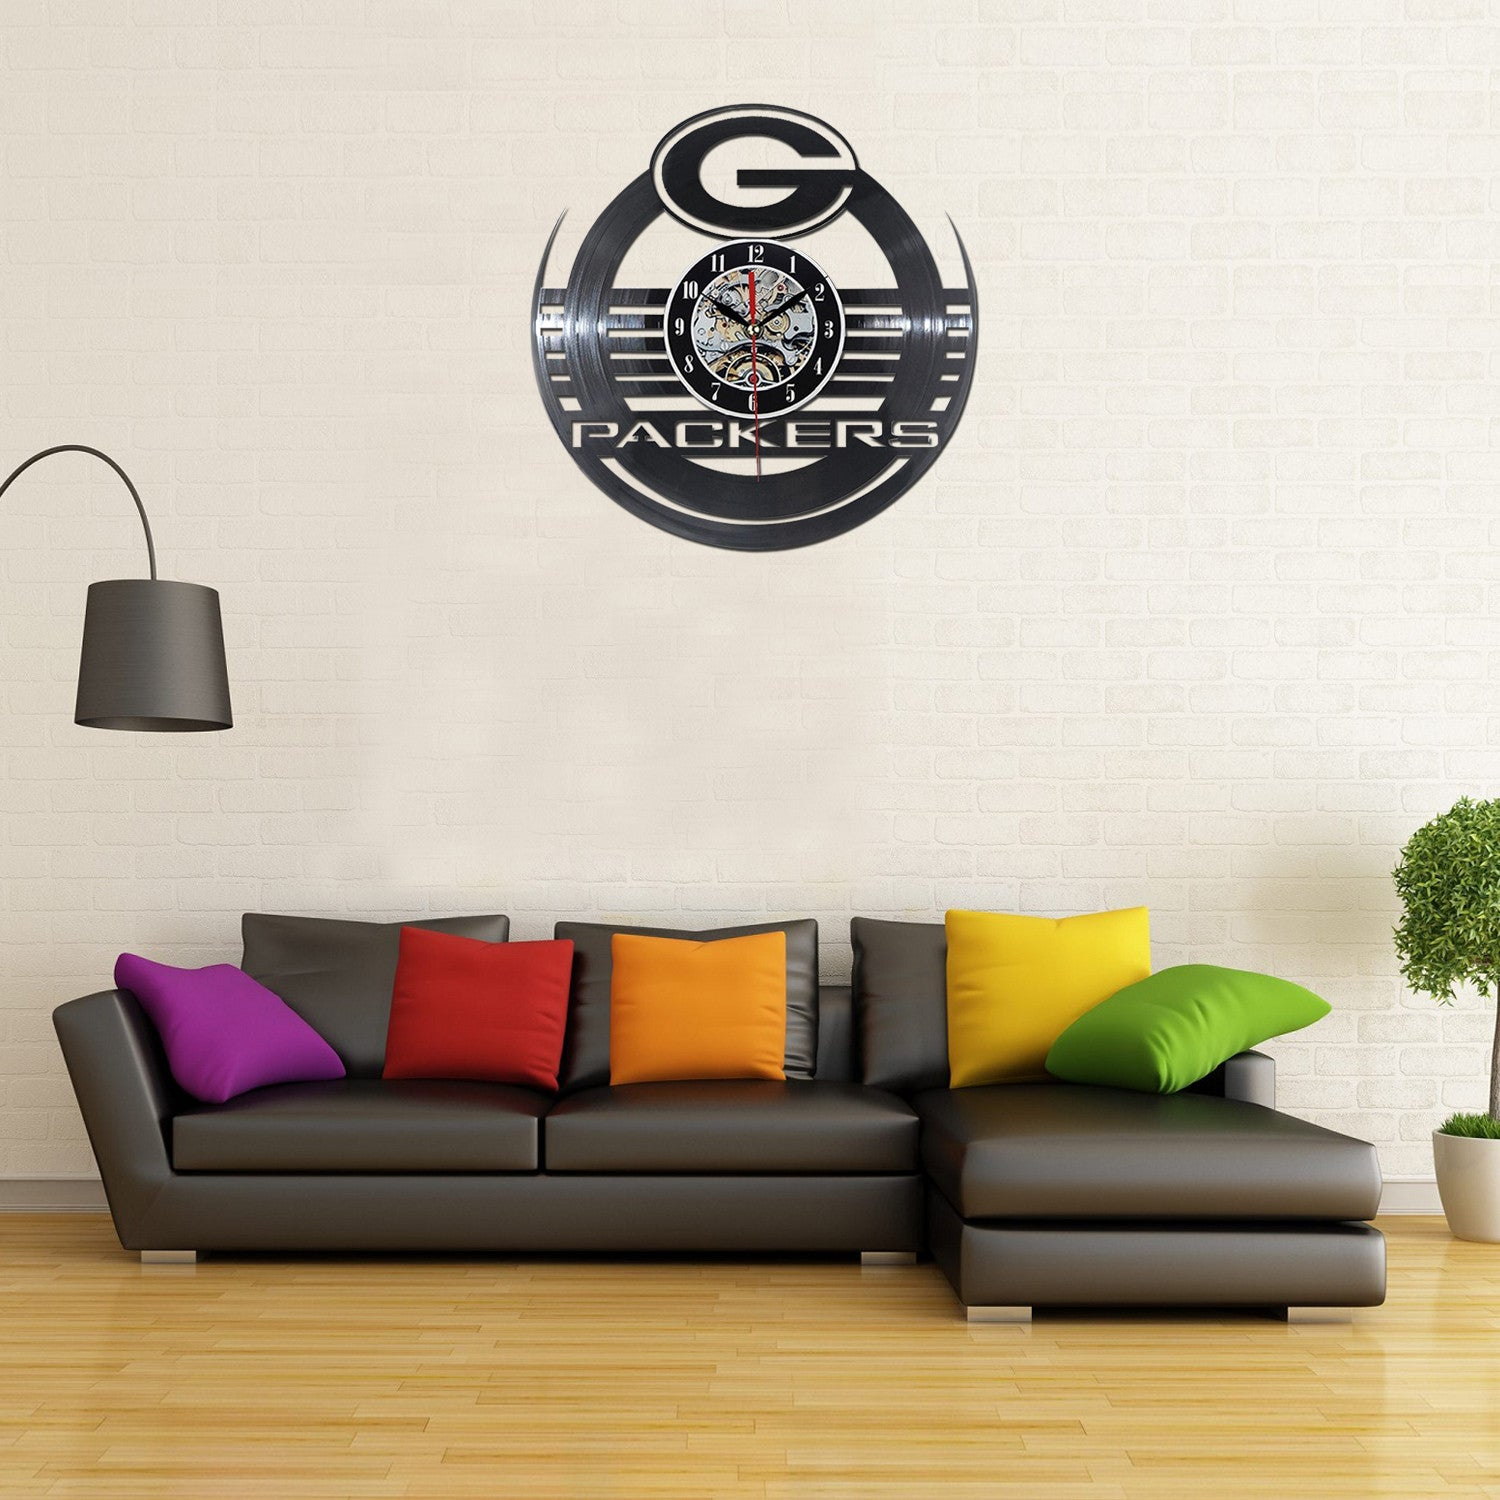 Packers 3D Vinyl Wall Clock Home Decor